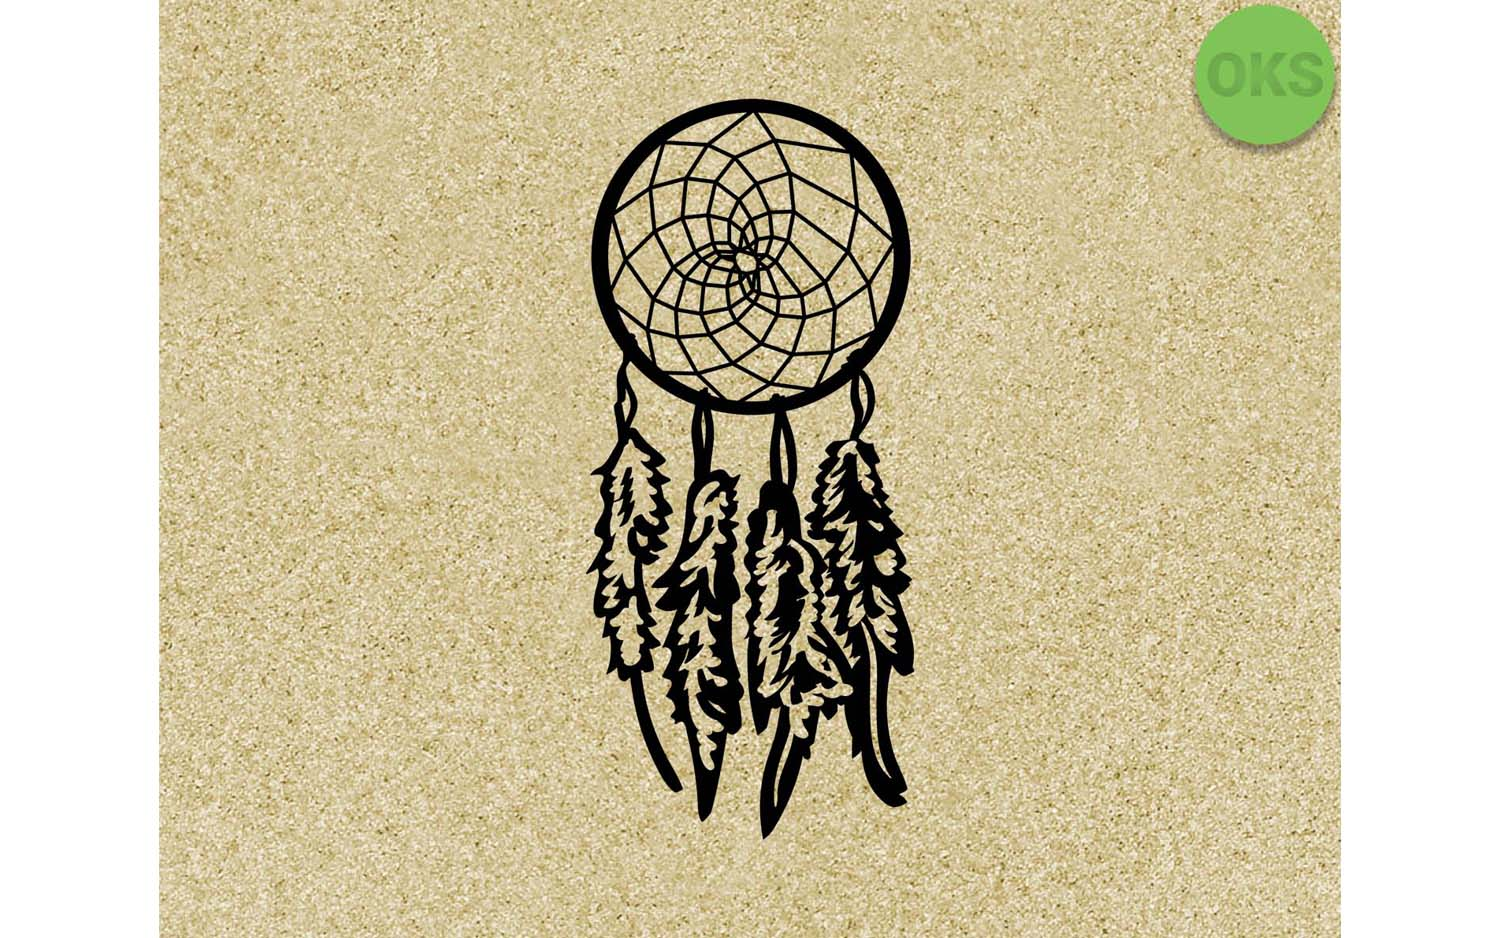 Download Free Dreamcatcher Graphic By Crafteroks Creative Fabrica for Cricut Explore, Silhouette and other cutting machines.